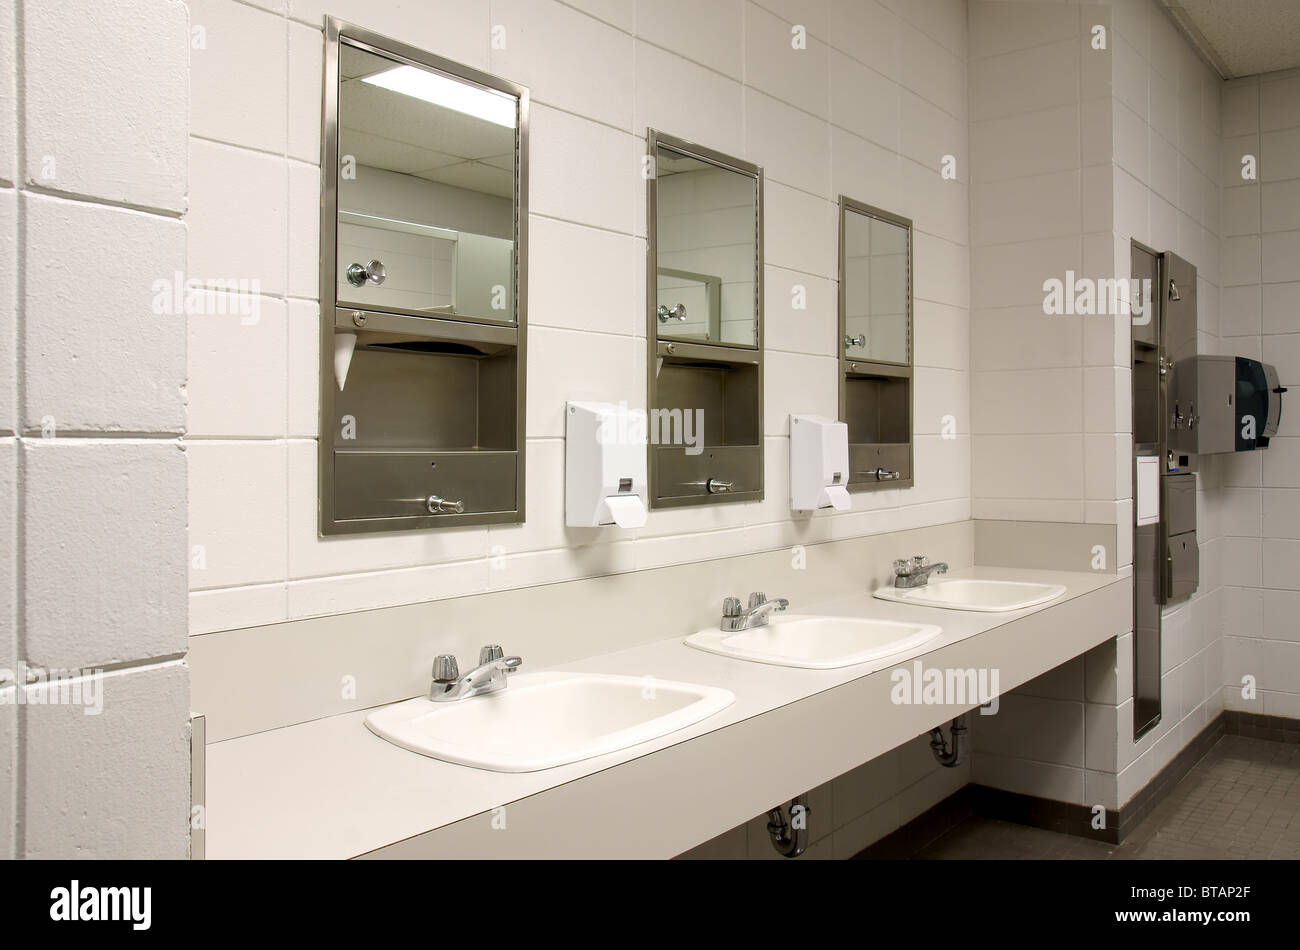 perspective shot of a counter top with three sinks and